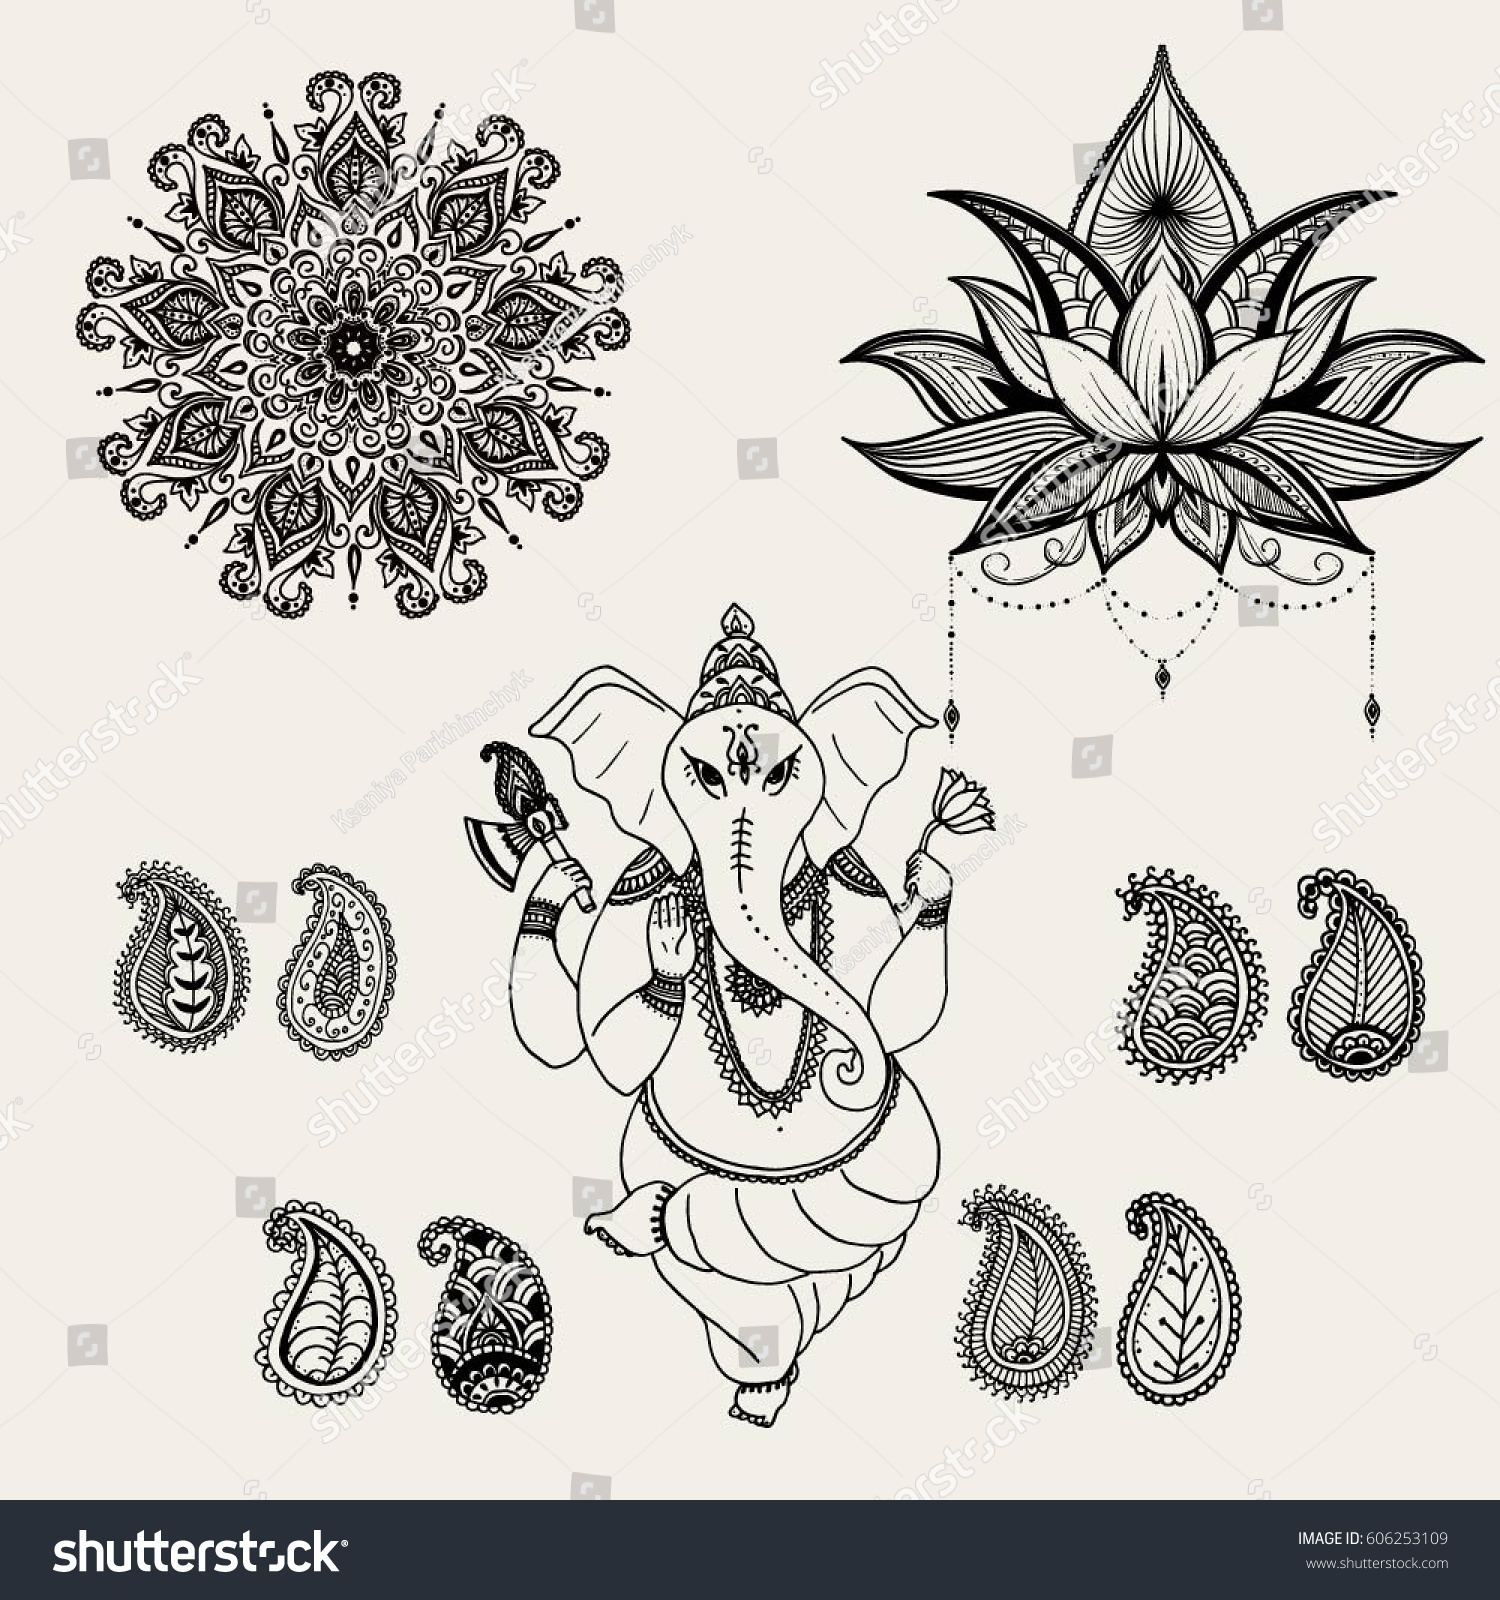 Hindu Elephant God Lord Ganesha Patron Stock Vector Royalty Free